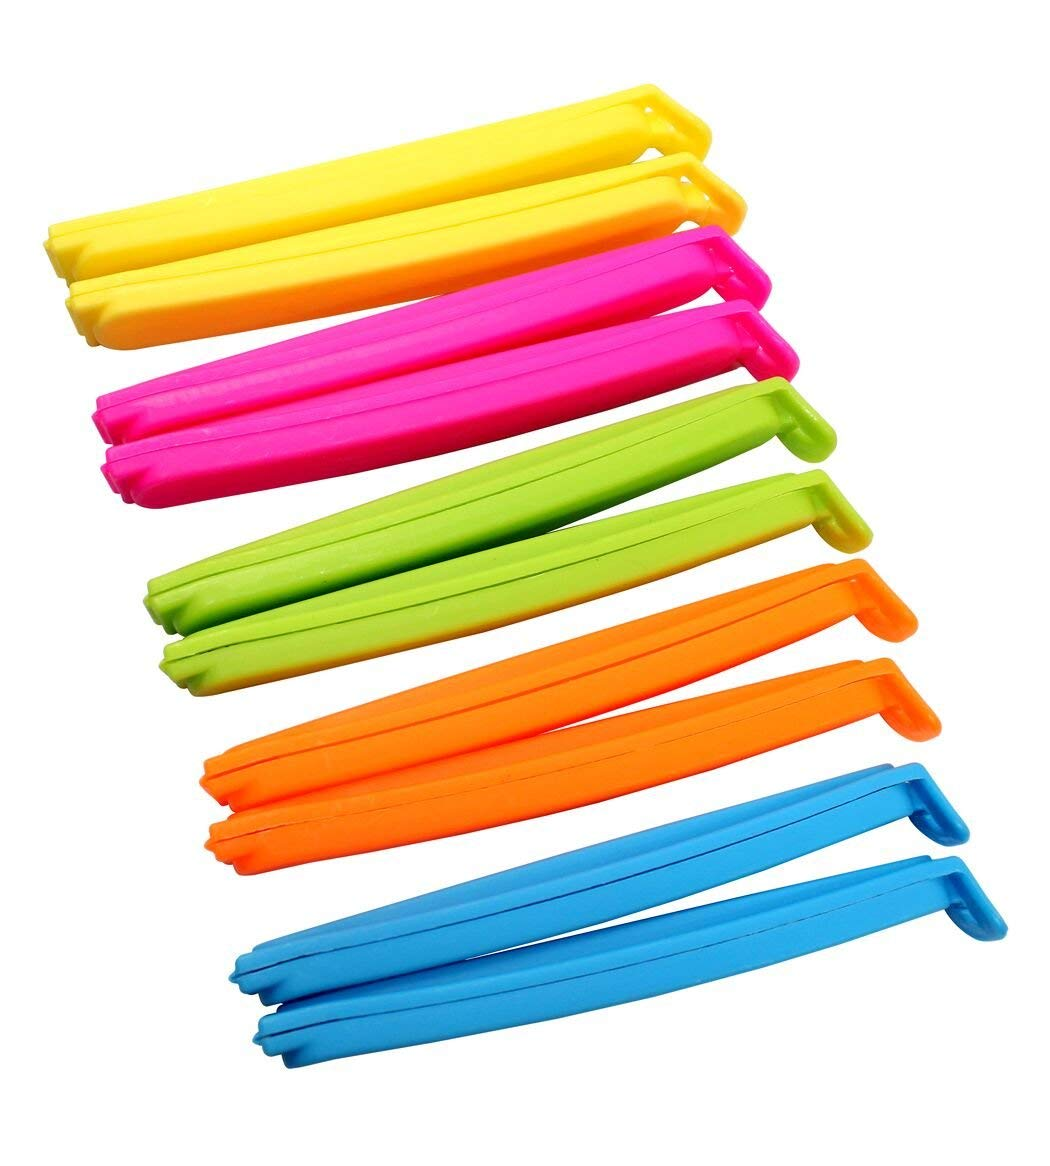 Dianoo 20pcs Multicolor Food Bags Sealing Clips For Kitchen And Home 11.5cm